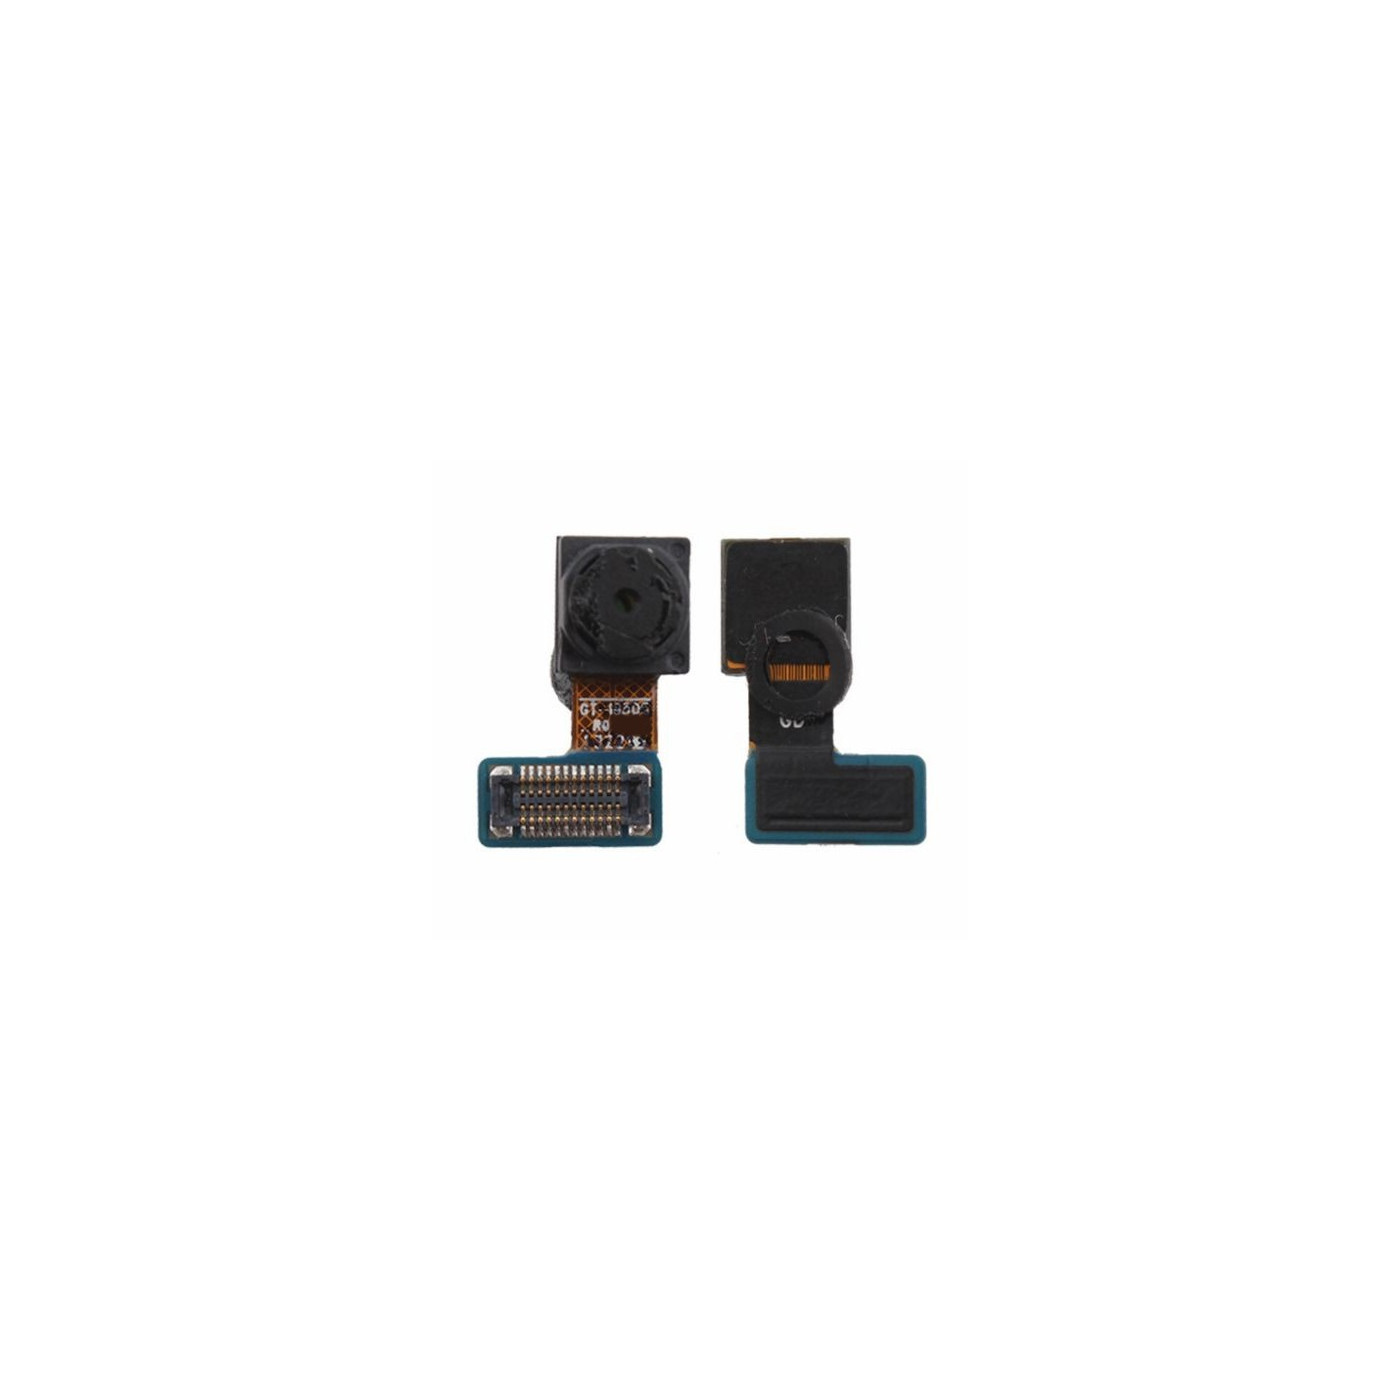 Caméra frontale avant pour Samsung Galaxy S4 i9505 i9500 remplacement